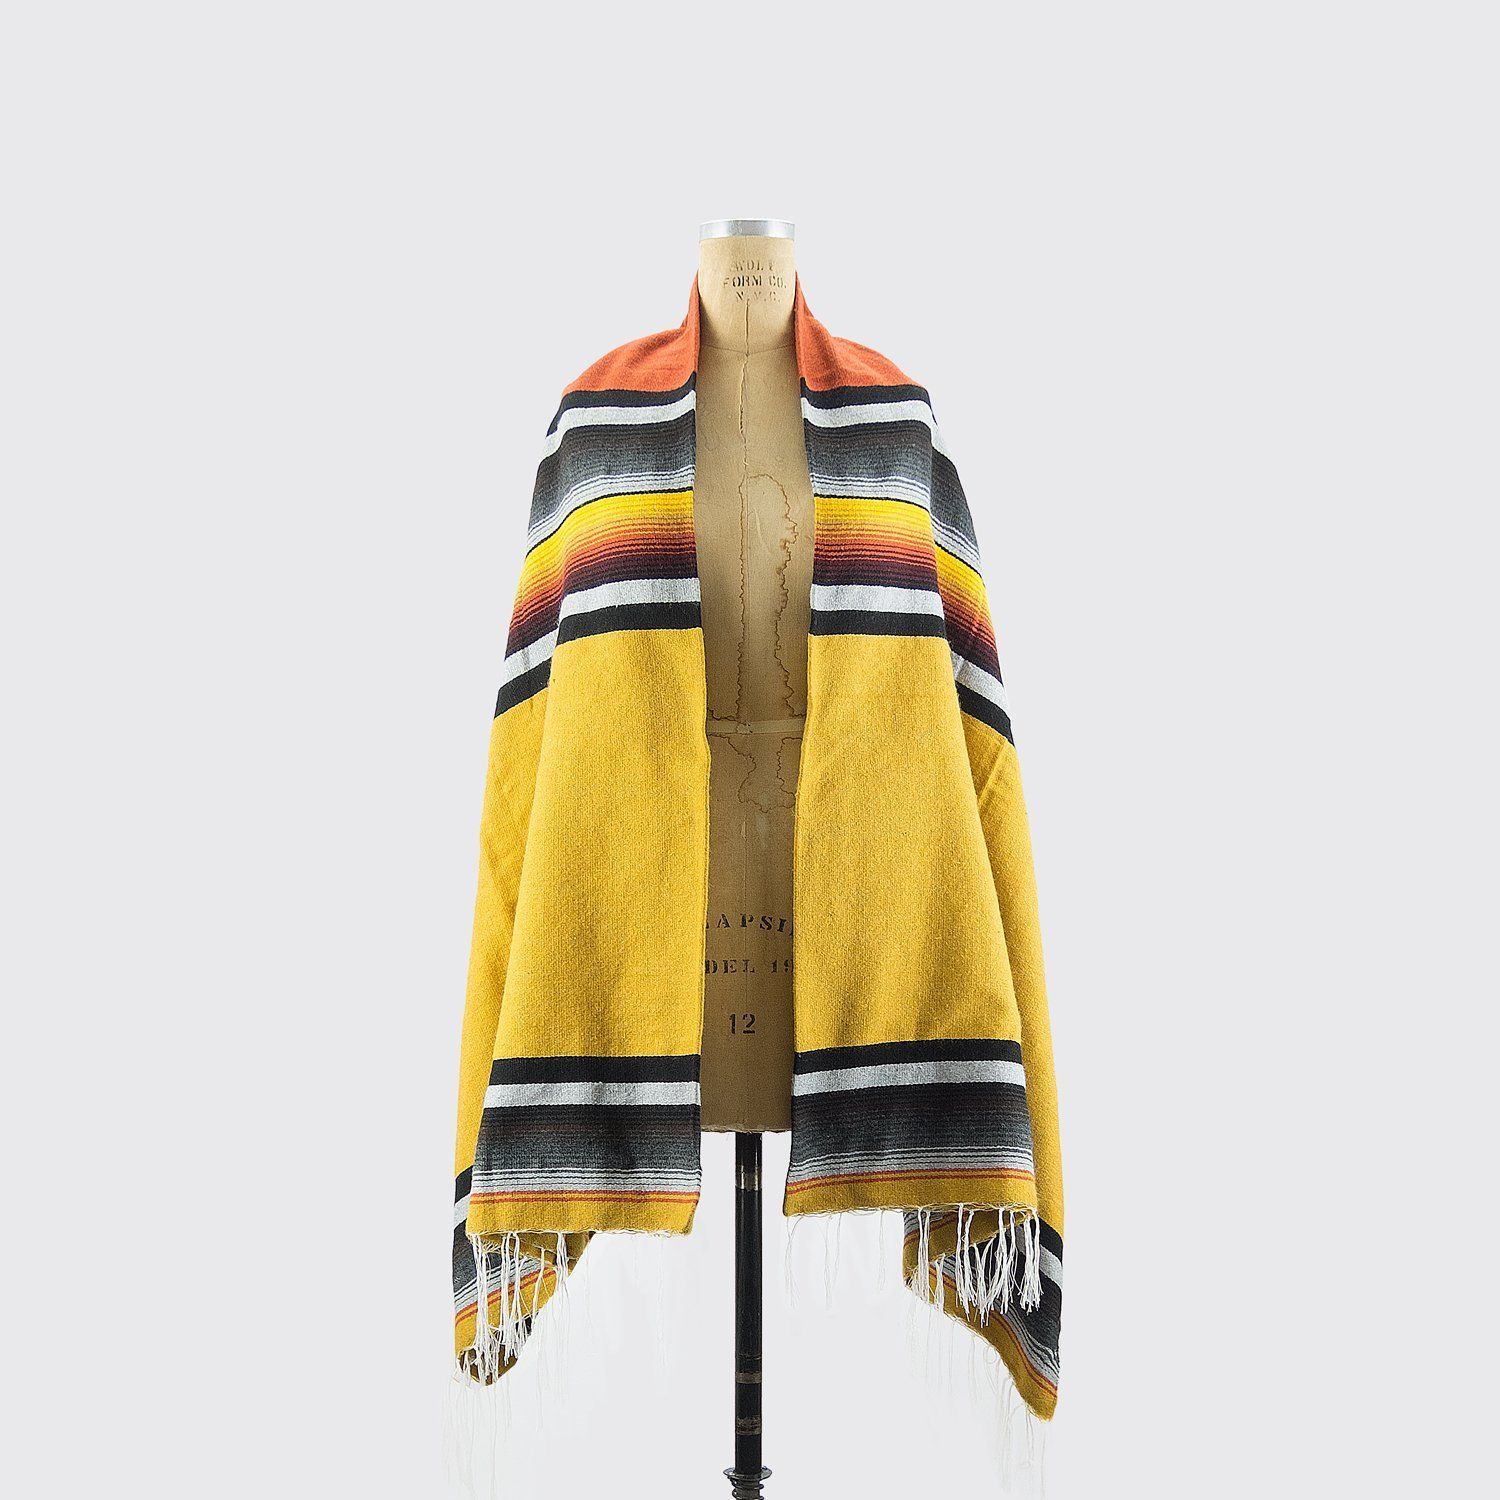 Utilitario Mexicano, Artisan Mexican Sarape, assorted colors, - Placewares